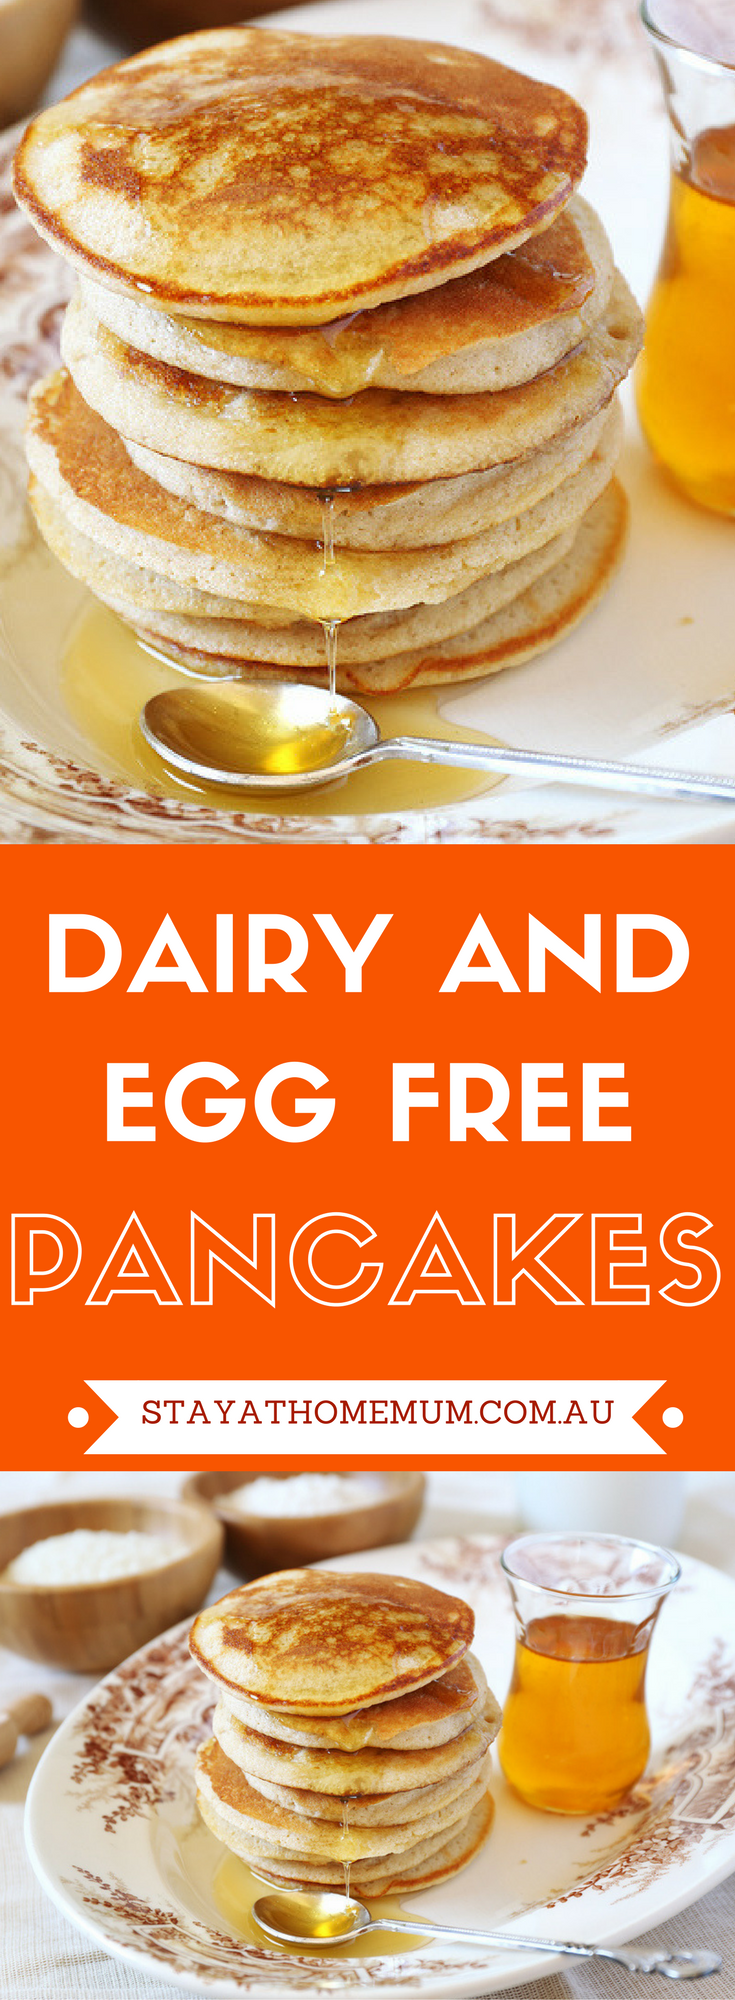 Dairy and Egg Free Pancakes